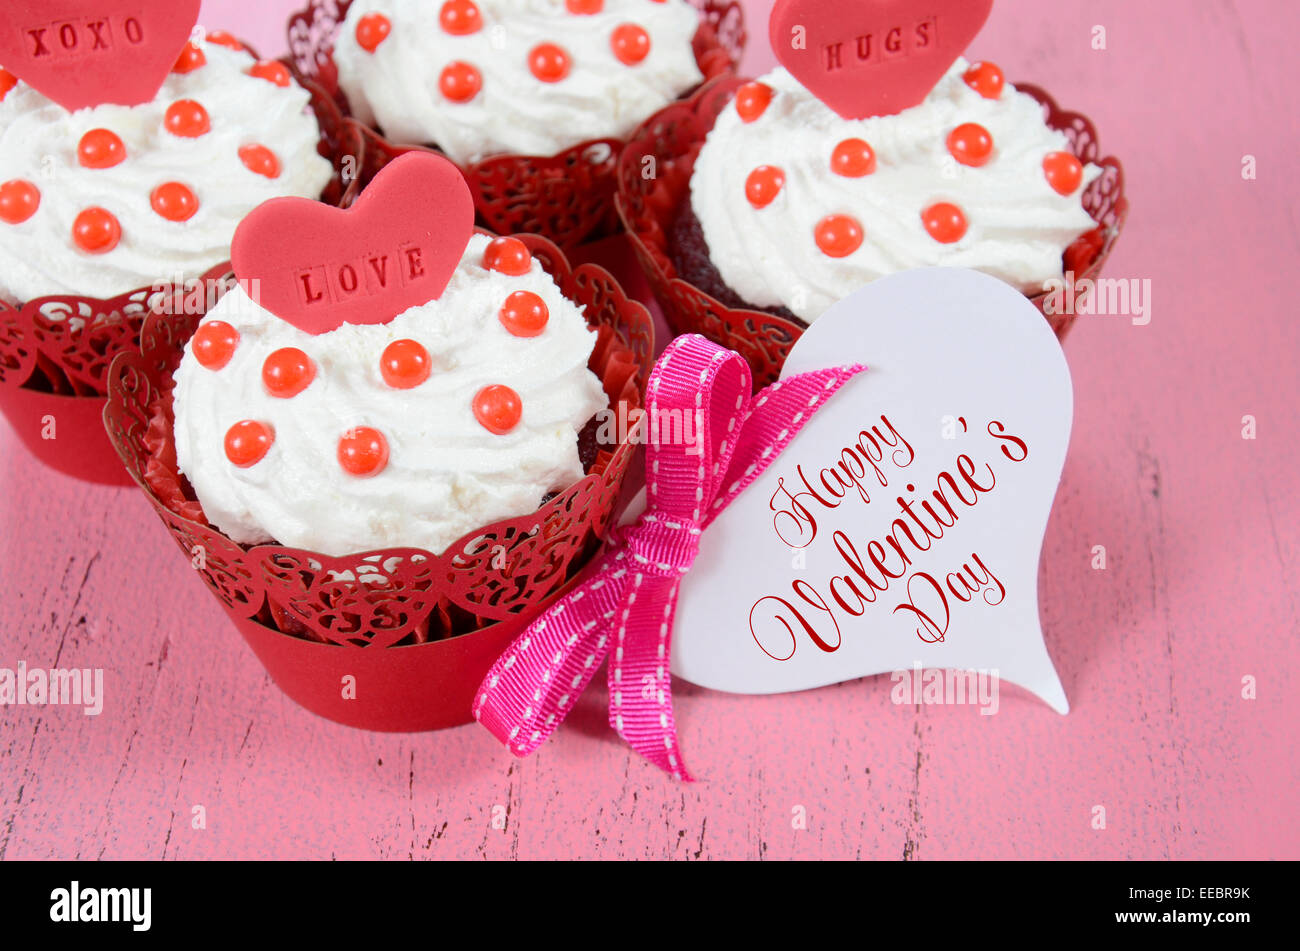 Happy Valentine Red Velvet Cupcakes With Love Messages On Pink Stock